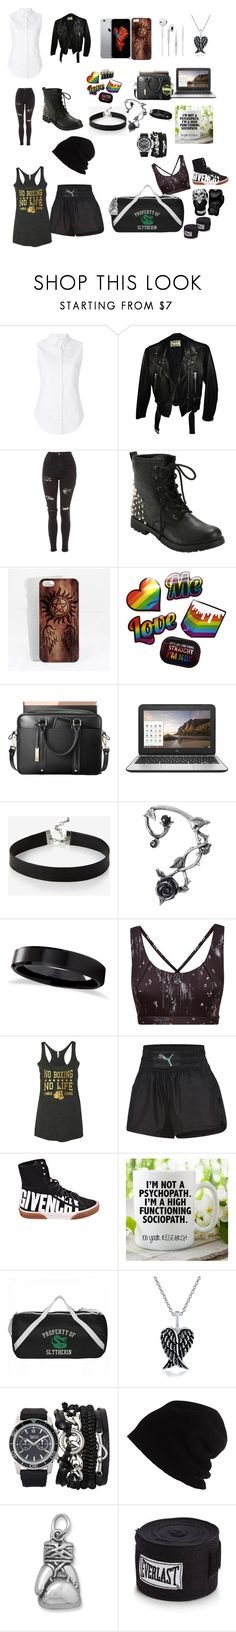 """""""My style"""" by xxshadownorthfacexx on Polyvore featuring Thom Browne, Acne Studios, Topshop, Hot Topic, HP, Express, Allurez, Sweaty Betty, Givenchy and Bling Jewelry"""